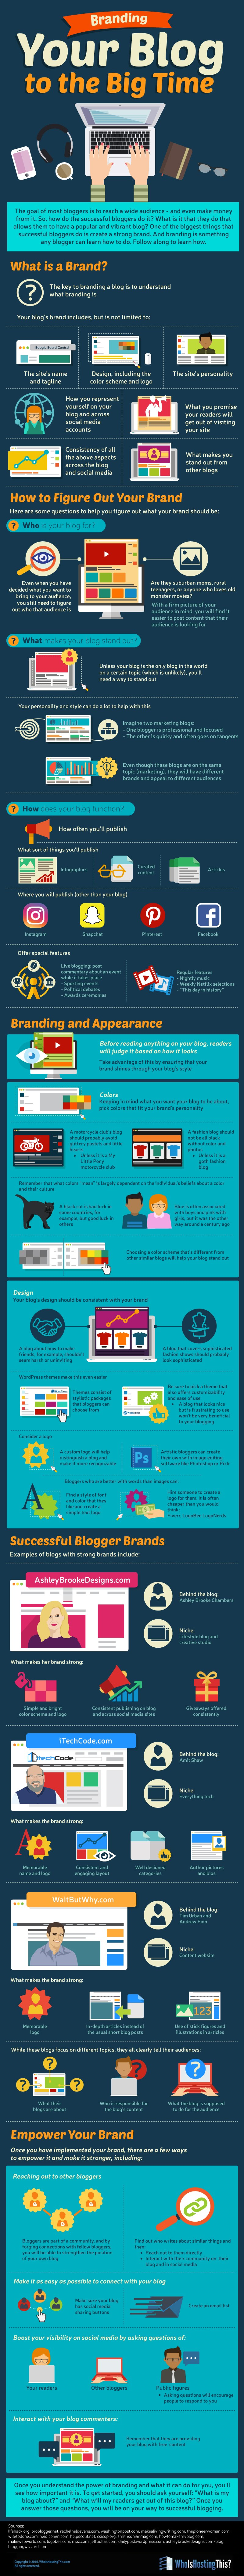 Branding Your Blog to the Big Time - #infographic